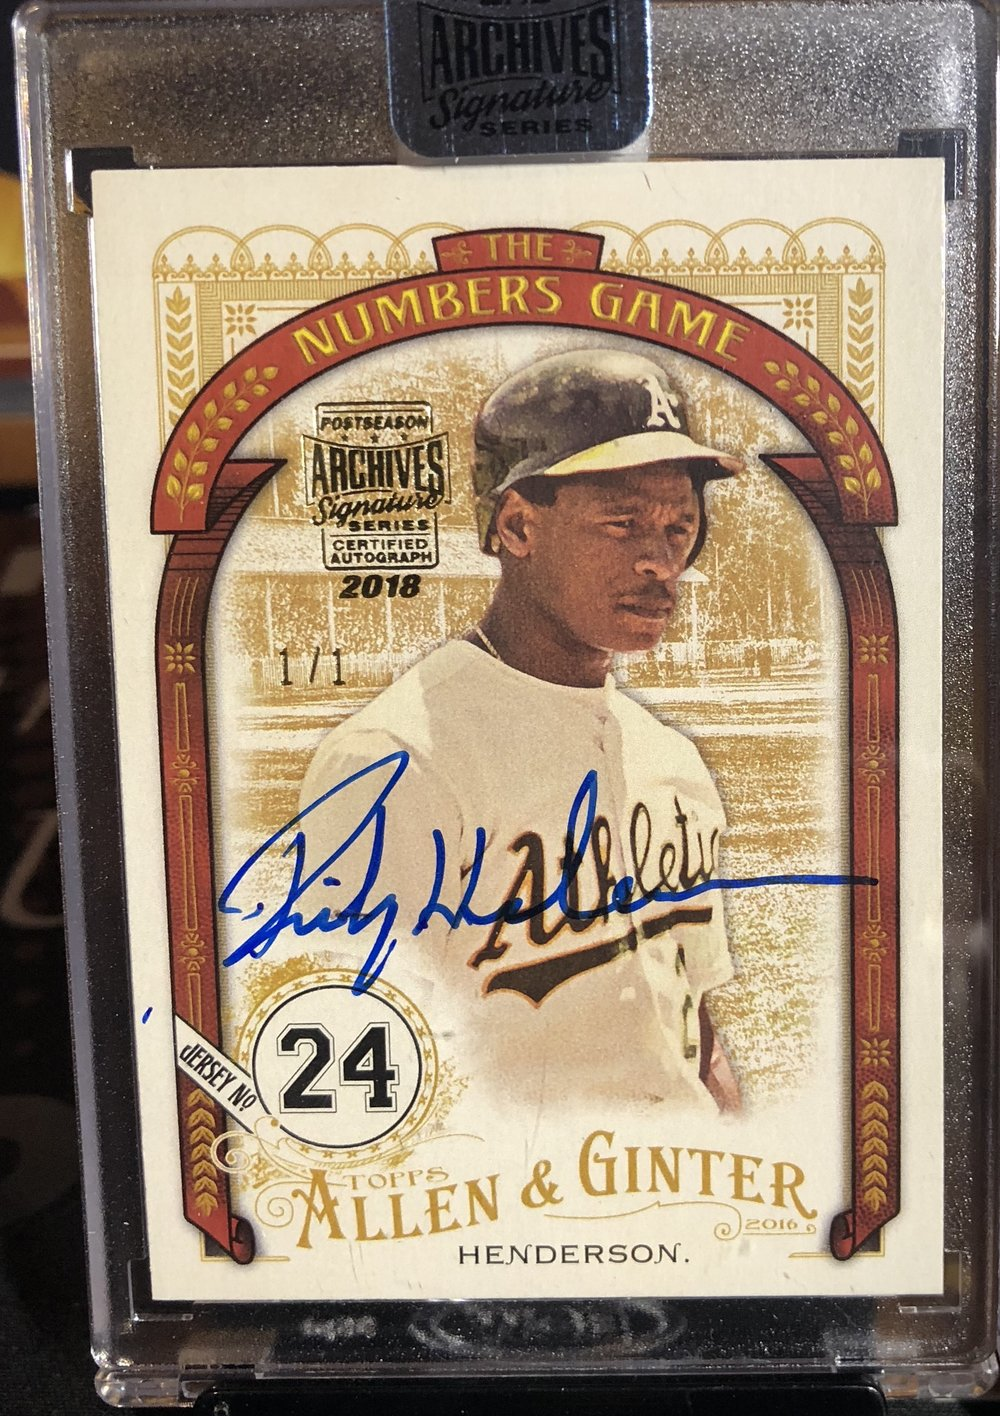 2018 Topps Archives Signature Series Rickey Henderson Auto 1/1